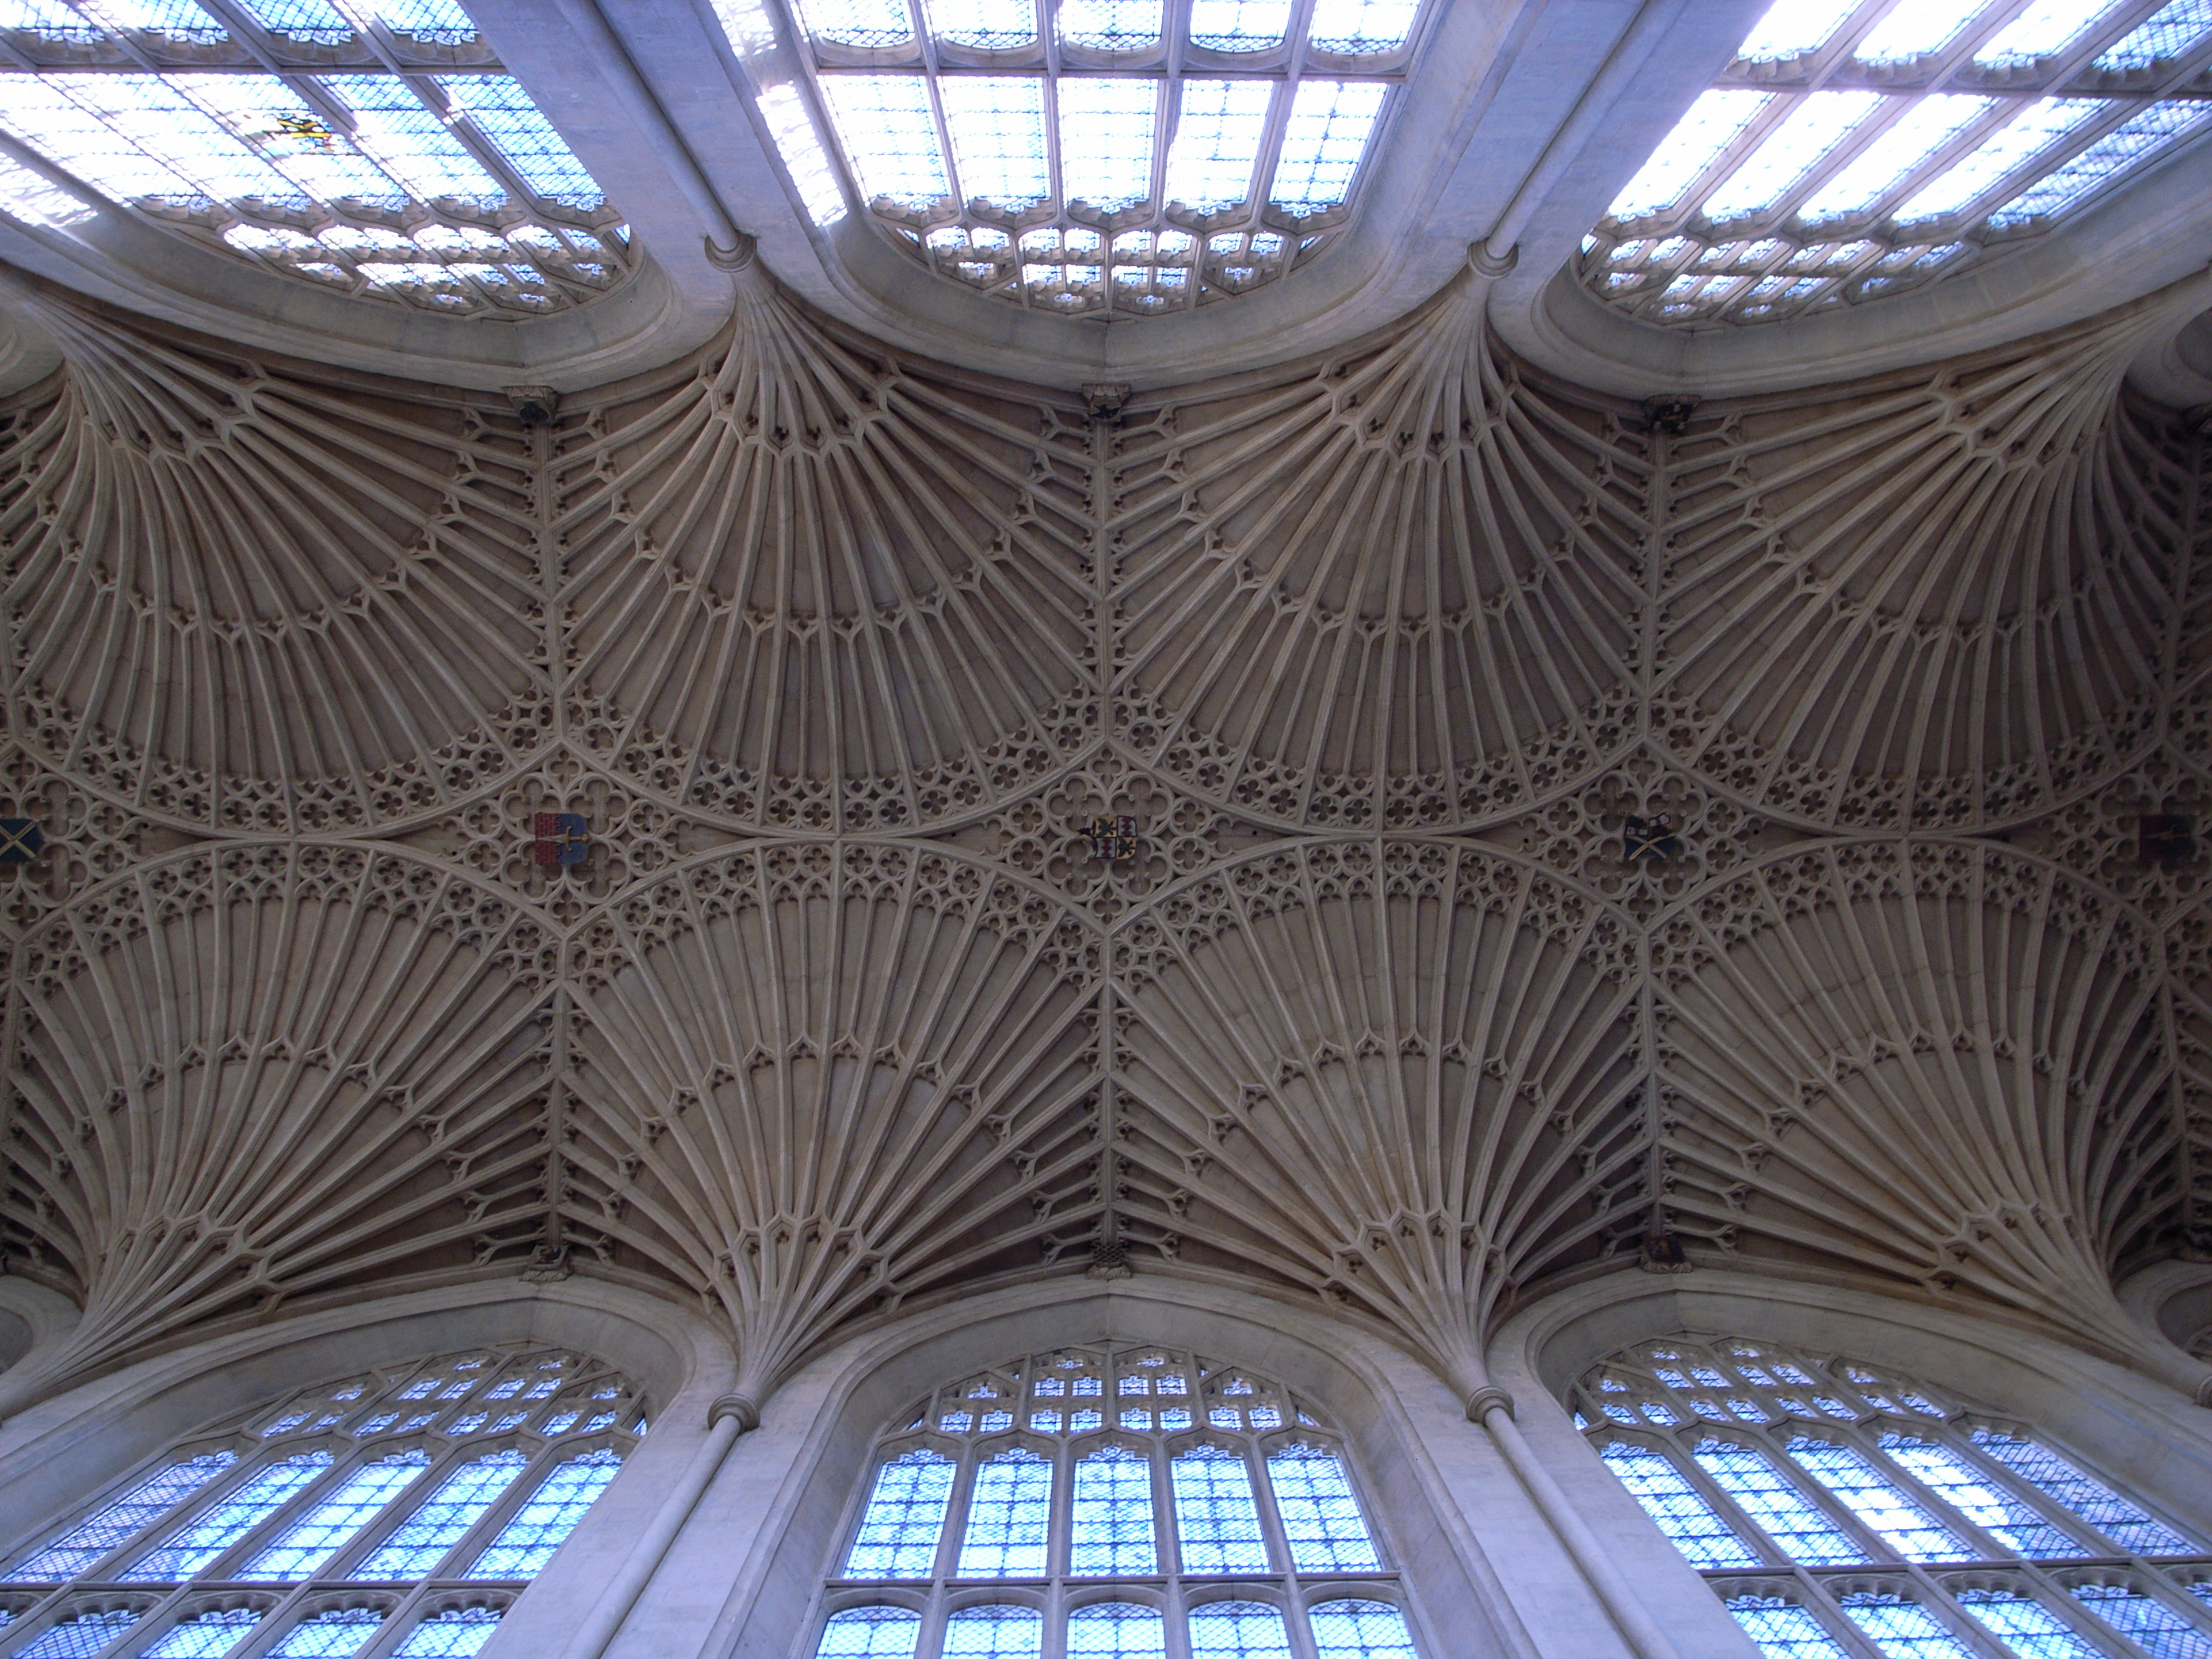 File:Bath Abbey Vaults.jpg - Wikimedia Commons